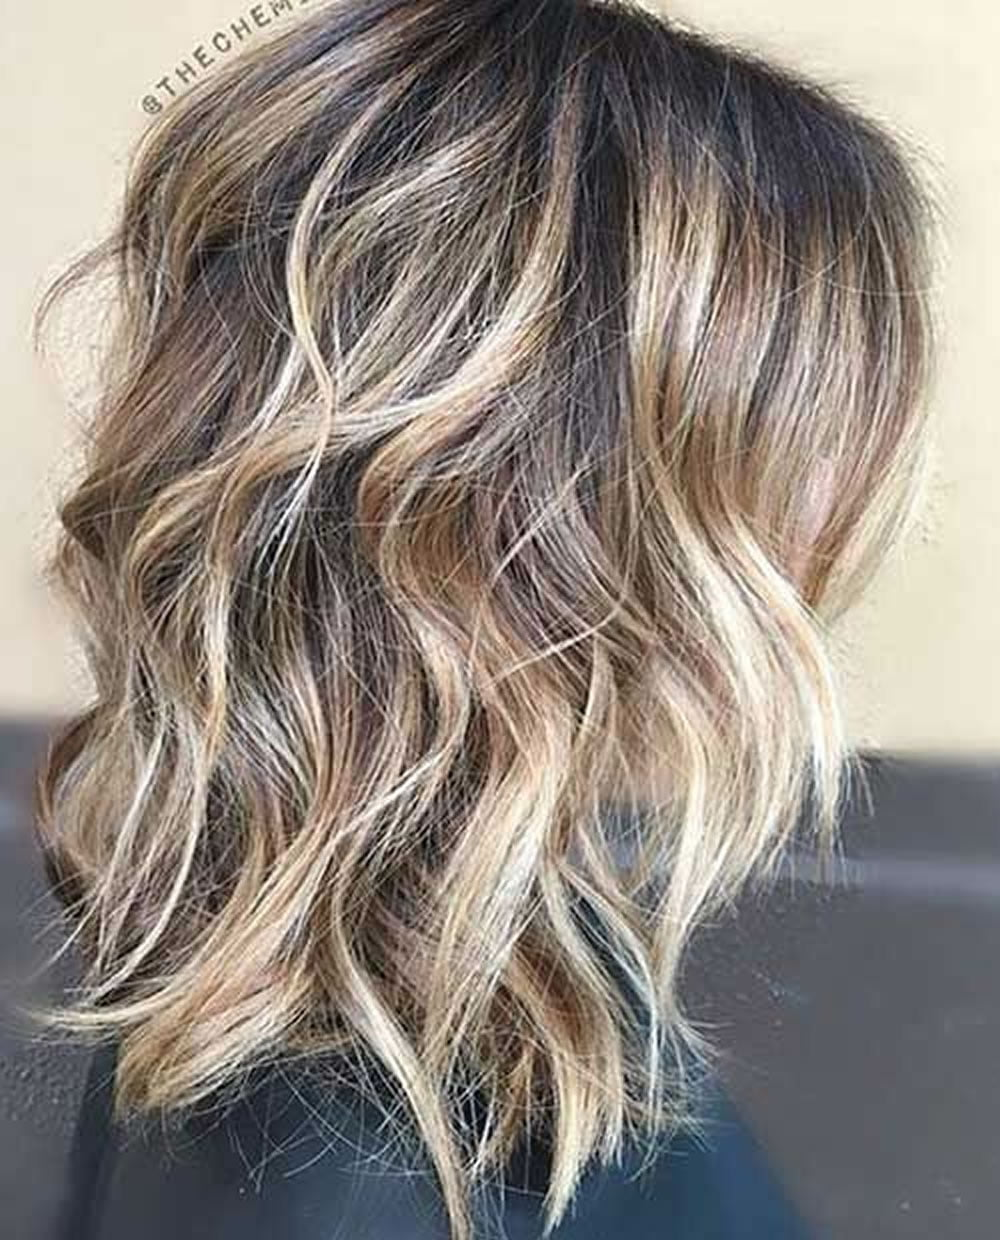 Long Layered Hairstyles 2019: 28 Layered Long Bob Hairstyles And Lob Haircuts 2018